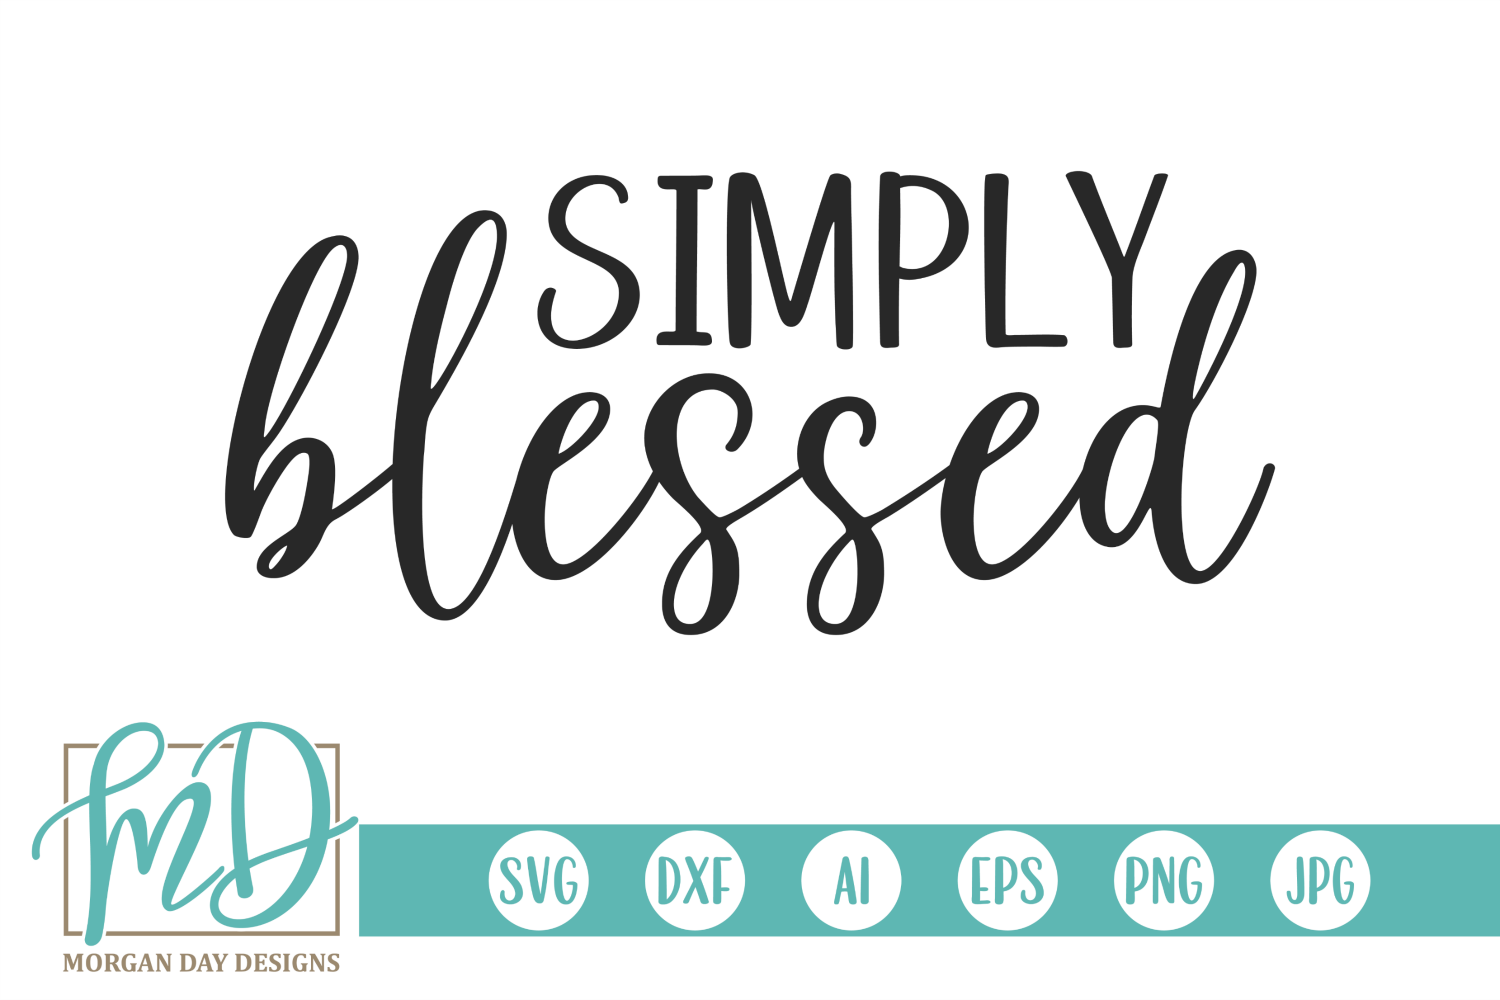 Download Free Simply Blessed Graphic By Morgan Day Designs Creative Fabrica for Cricut Explore, Silhouette and other cutting machines.